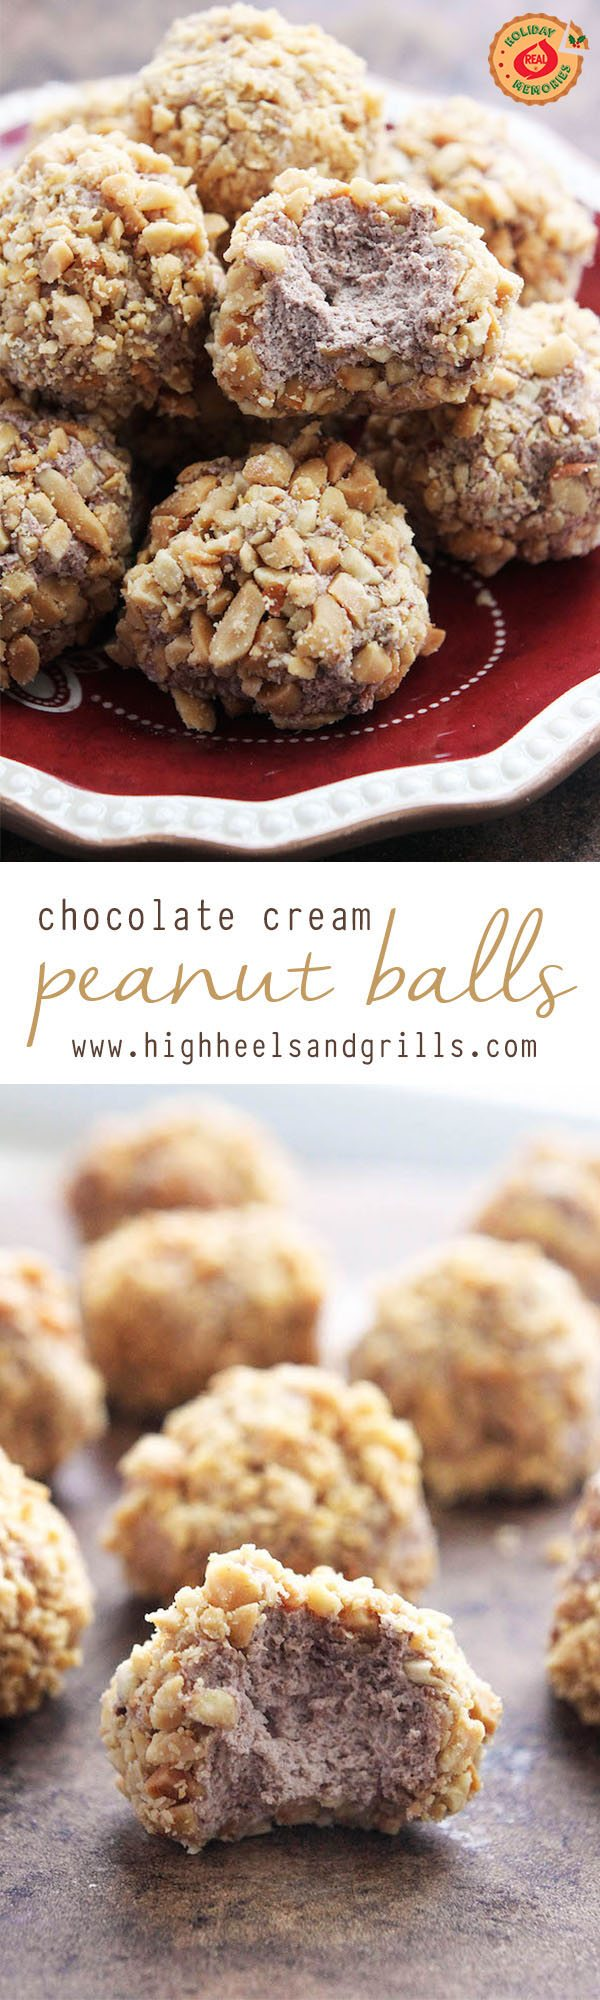 Chocolate Peanut Cream Balls Collage RS